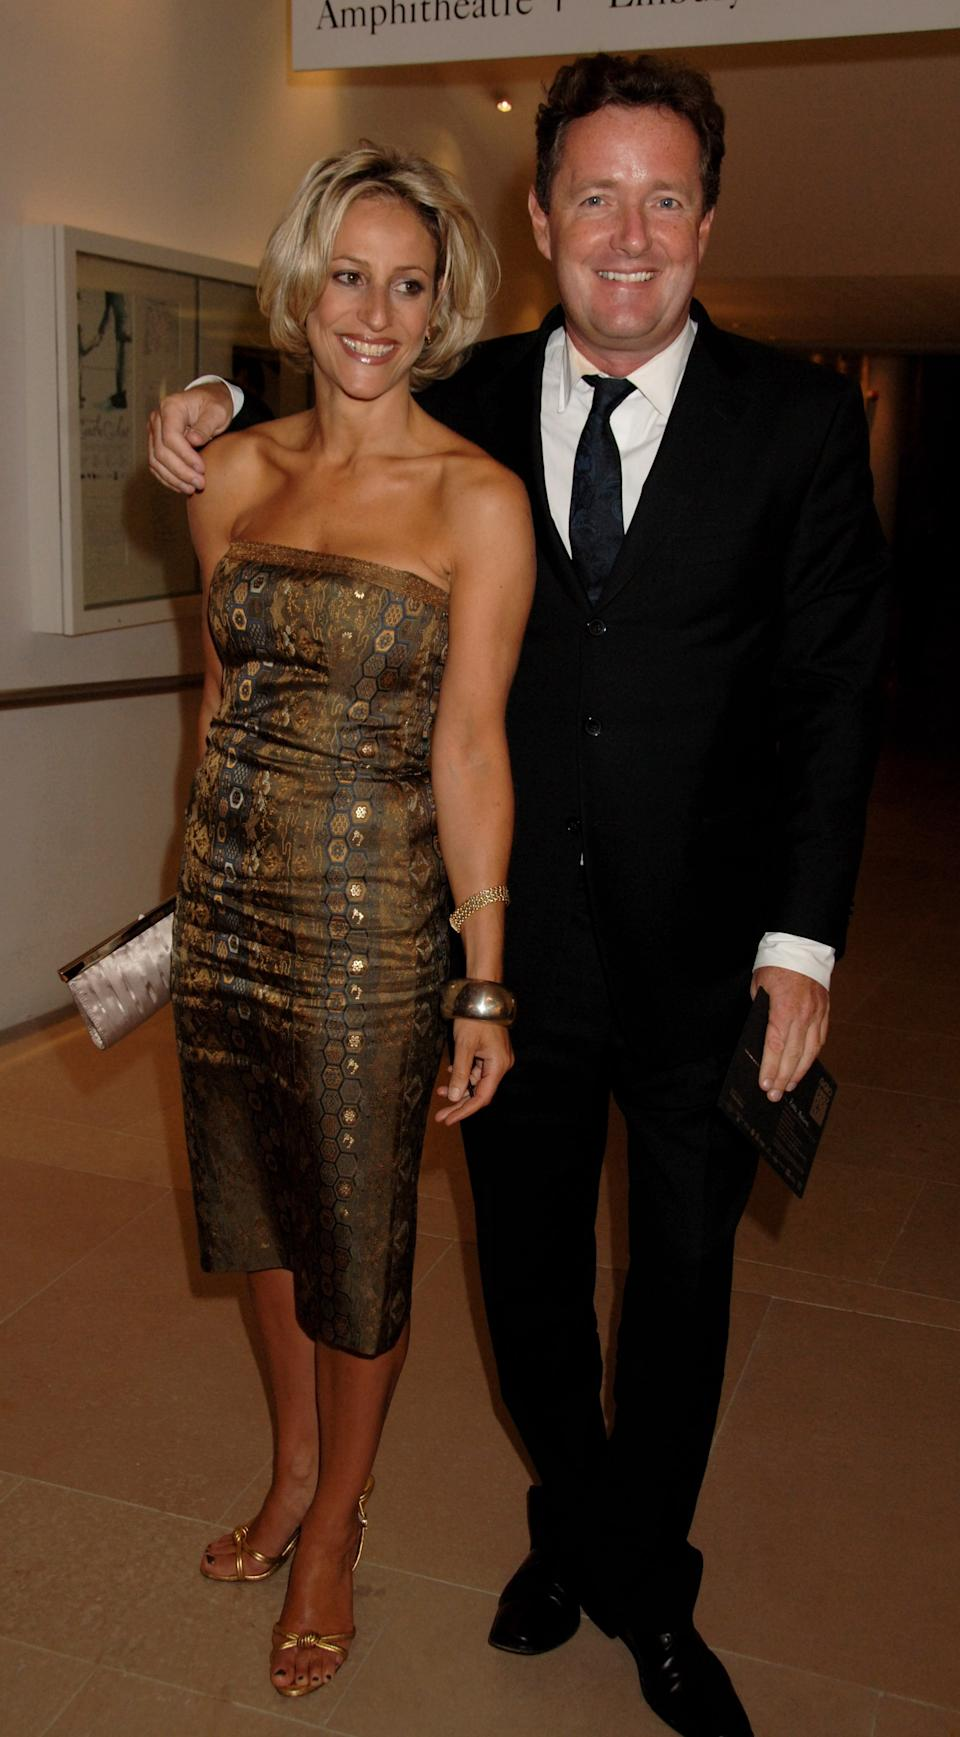 LONDON - SEPTEMBER 04:  (EMBARGOED FOR PUBLICATION IN UK TABLOID NEWSPAPERS UNTIL 48 HOURS AFTER CREATE DATE AND TIME)  Emily Maitlis and Piers Morgan arrive at the GQ Men Of The Year Awards, at the Royal Opera House on September 4, 2007 in London, England.  (Photo by Dave M. Benett/Getty Images)